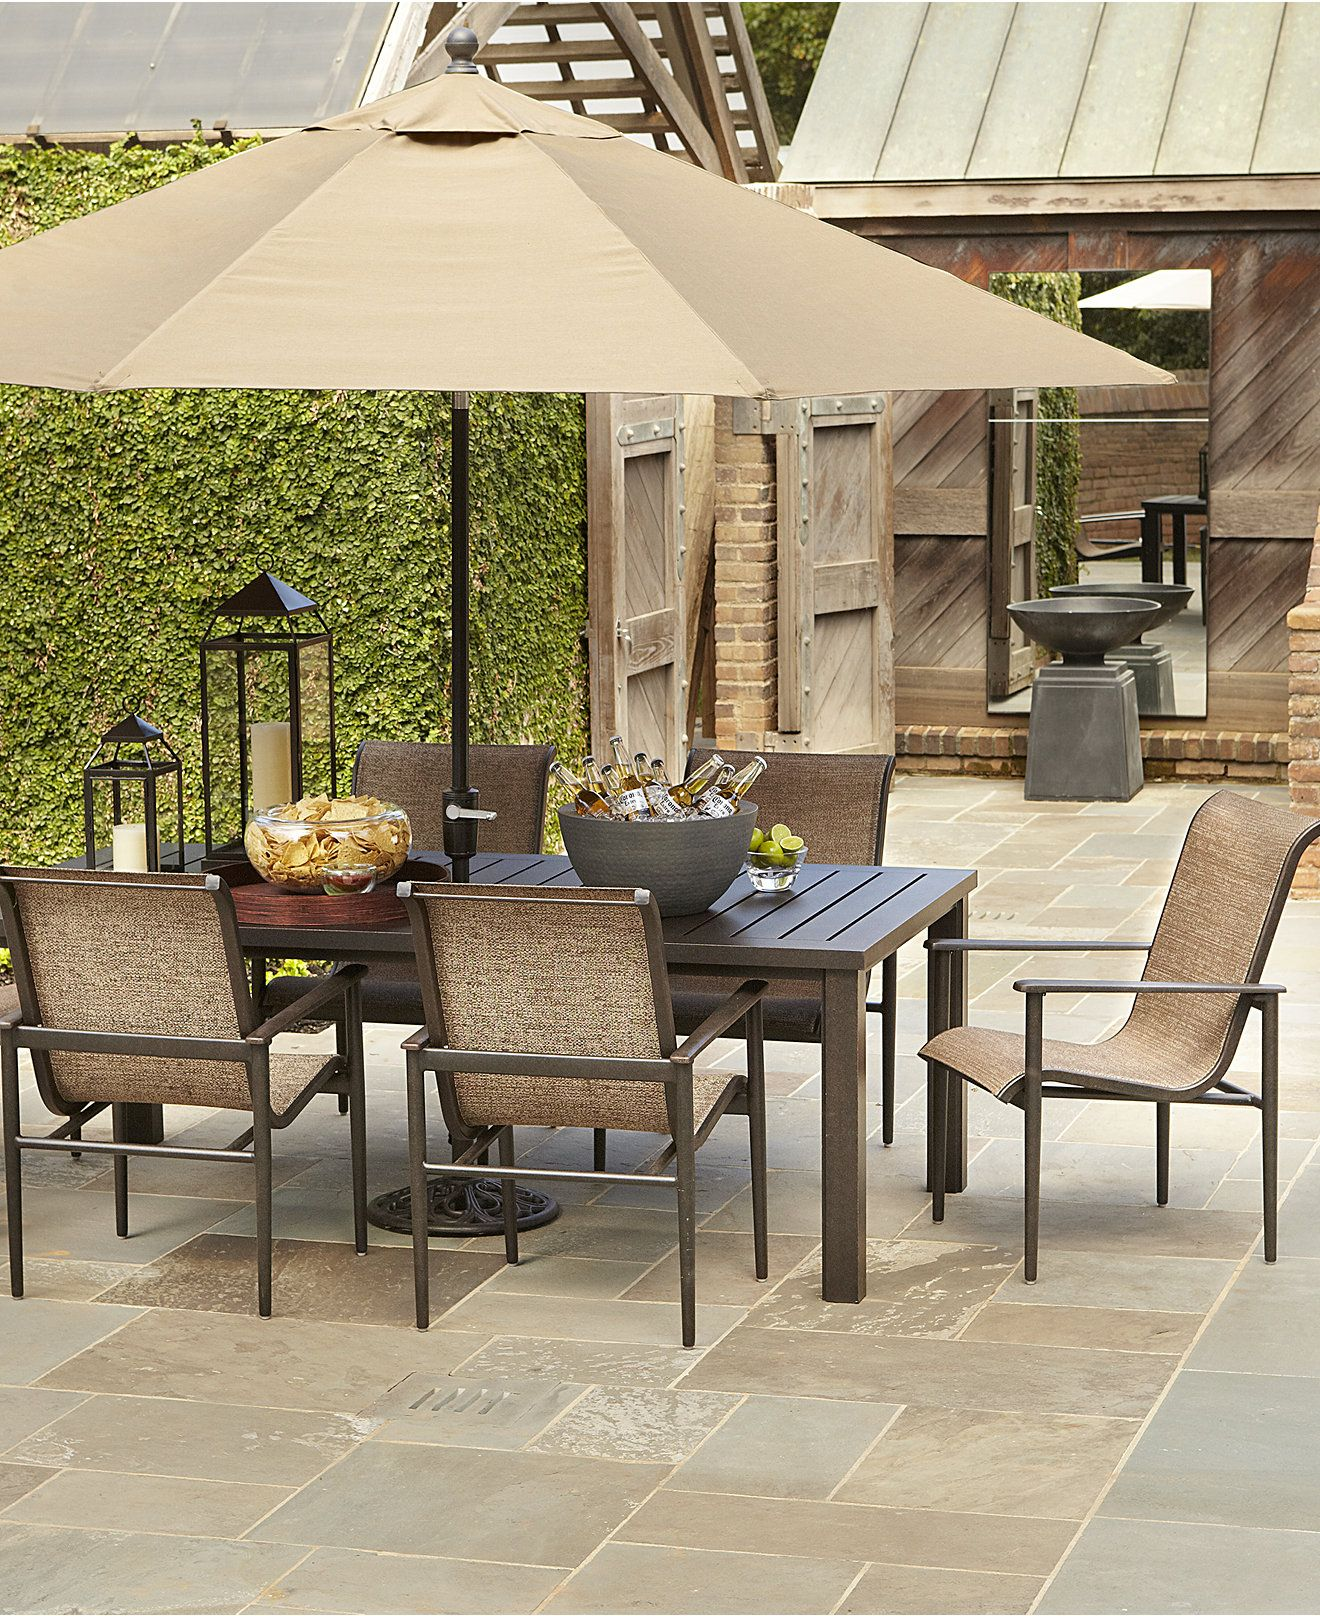 Badgley Outdoor Patio Furniture Dining Sets & Pieces -84